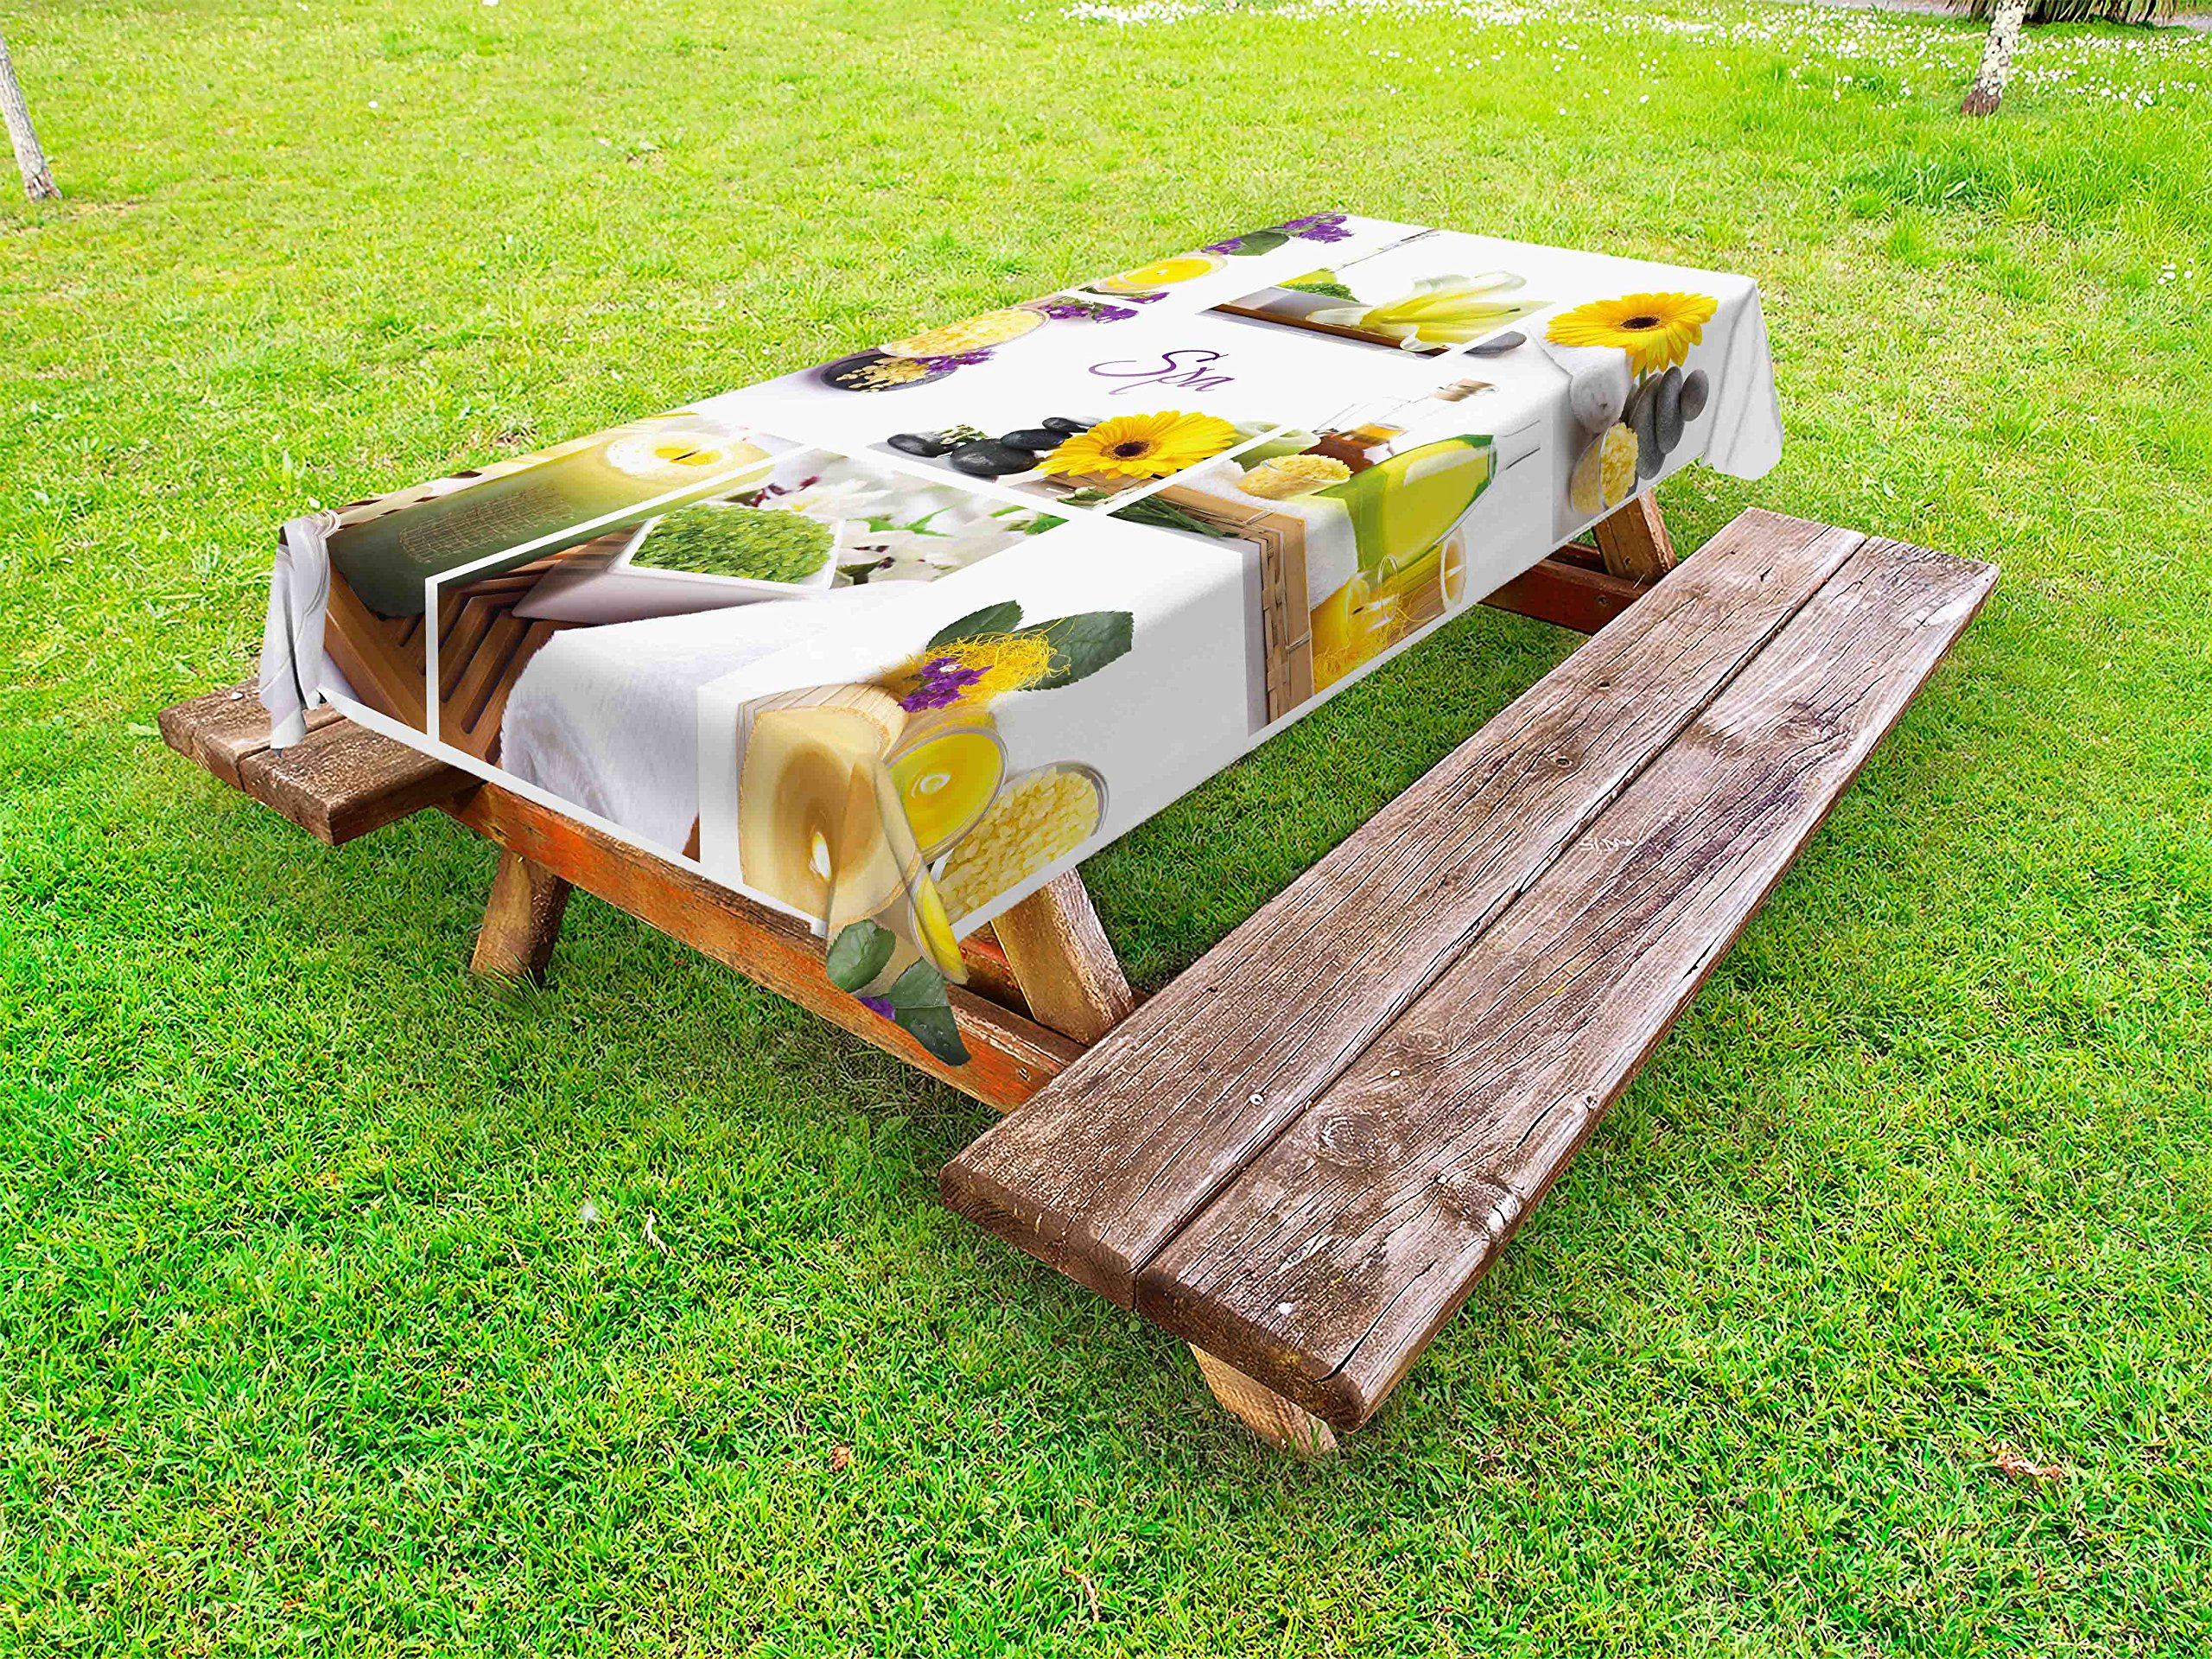 Ambesonne Spa Outdoor Tablecloth, Yellow Happy Peaceful Spa Day with Flowers Candles and Herbal Oils Art, Decorative Washable Picnic Table Cloth, 58 X 84 inches, Yellow Purple and White